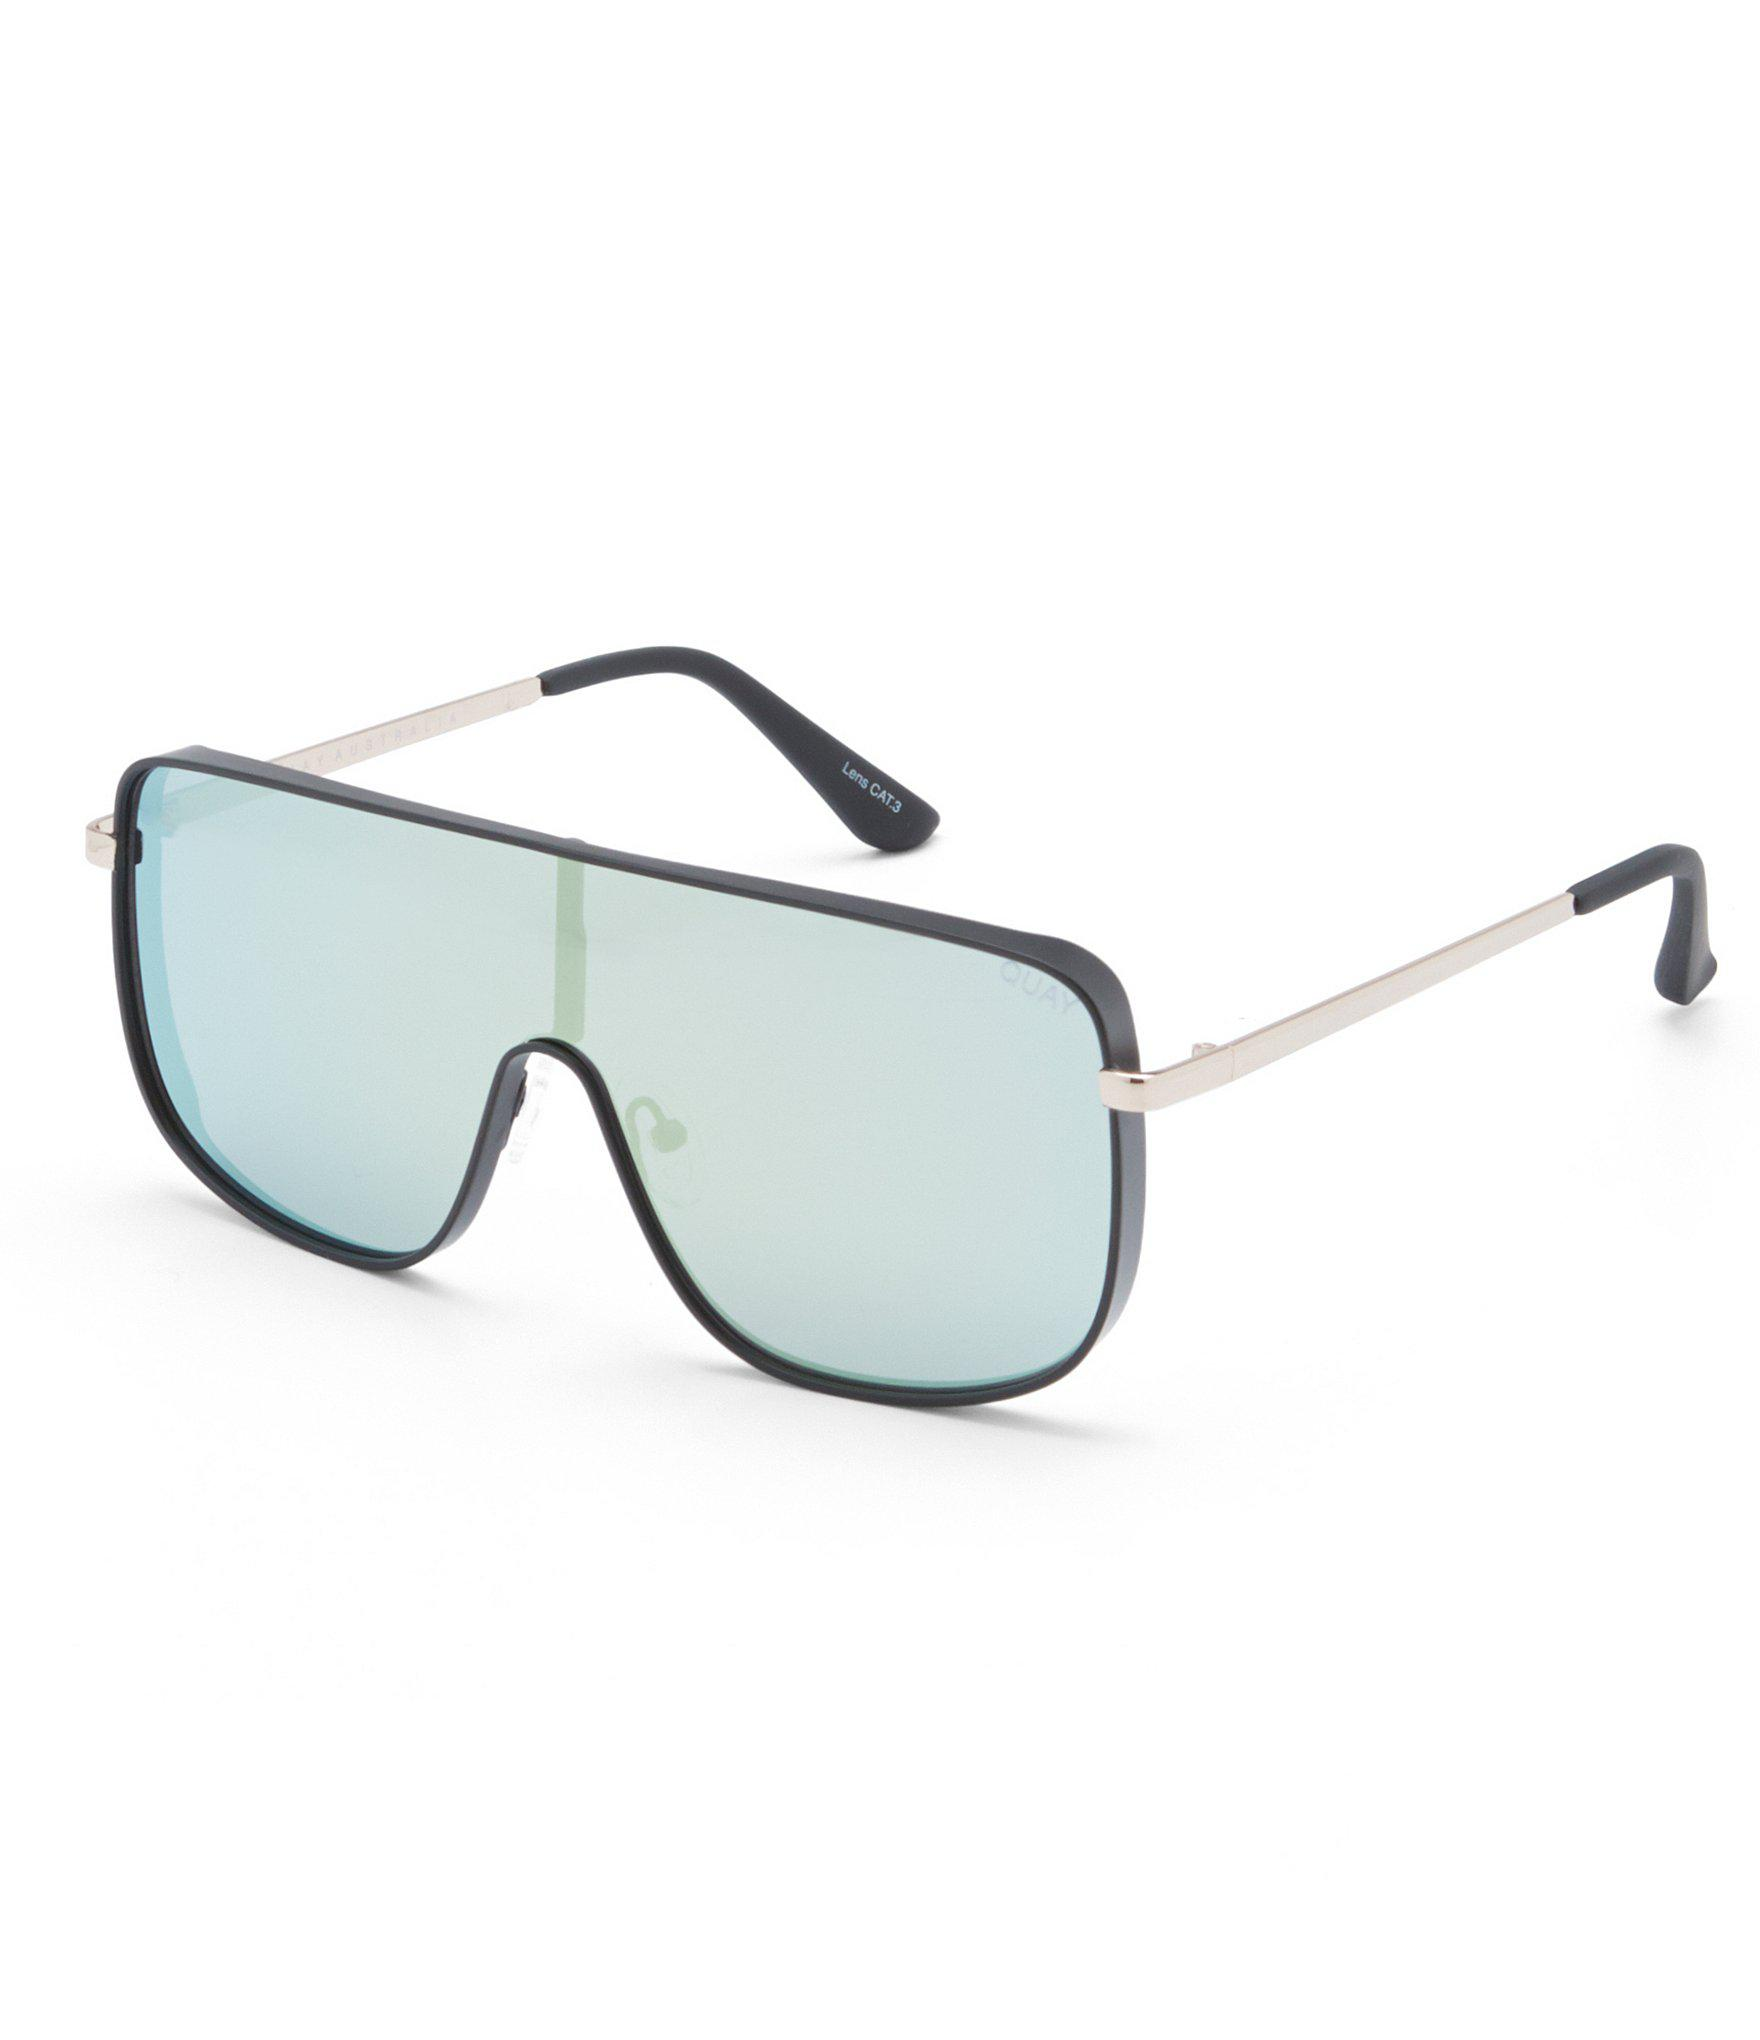 d6cc9cd7ce Quay Unbothered Shield Sunglasses - Lyst